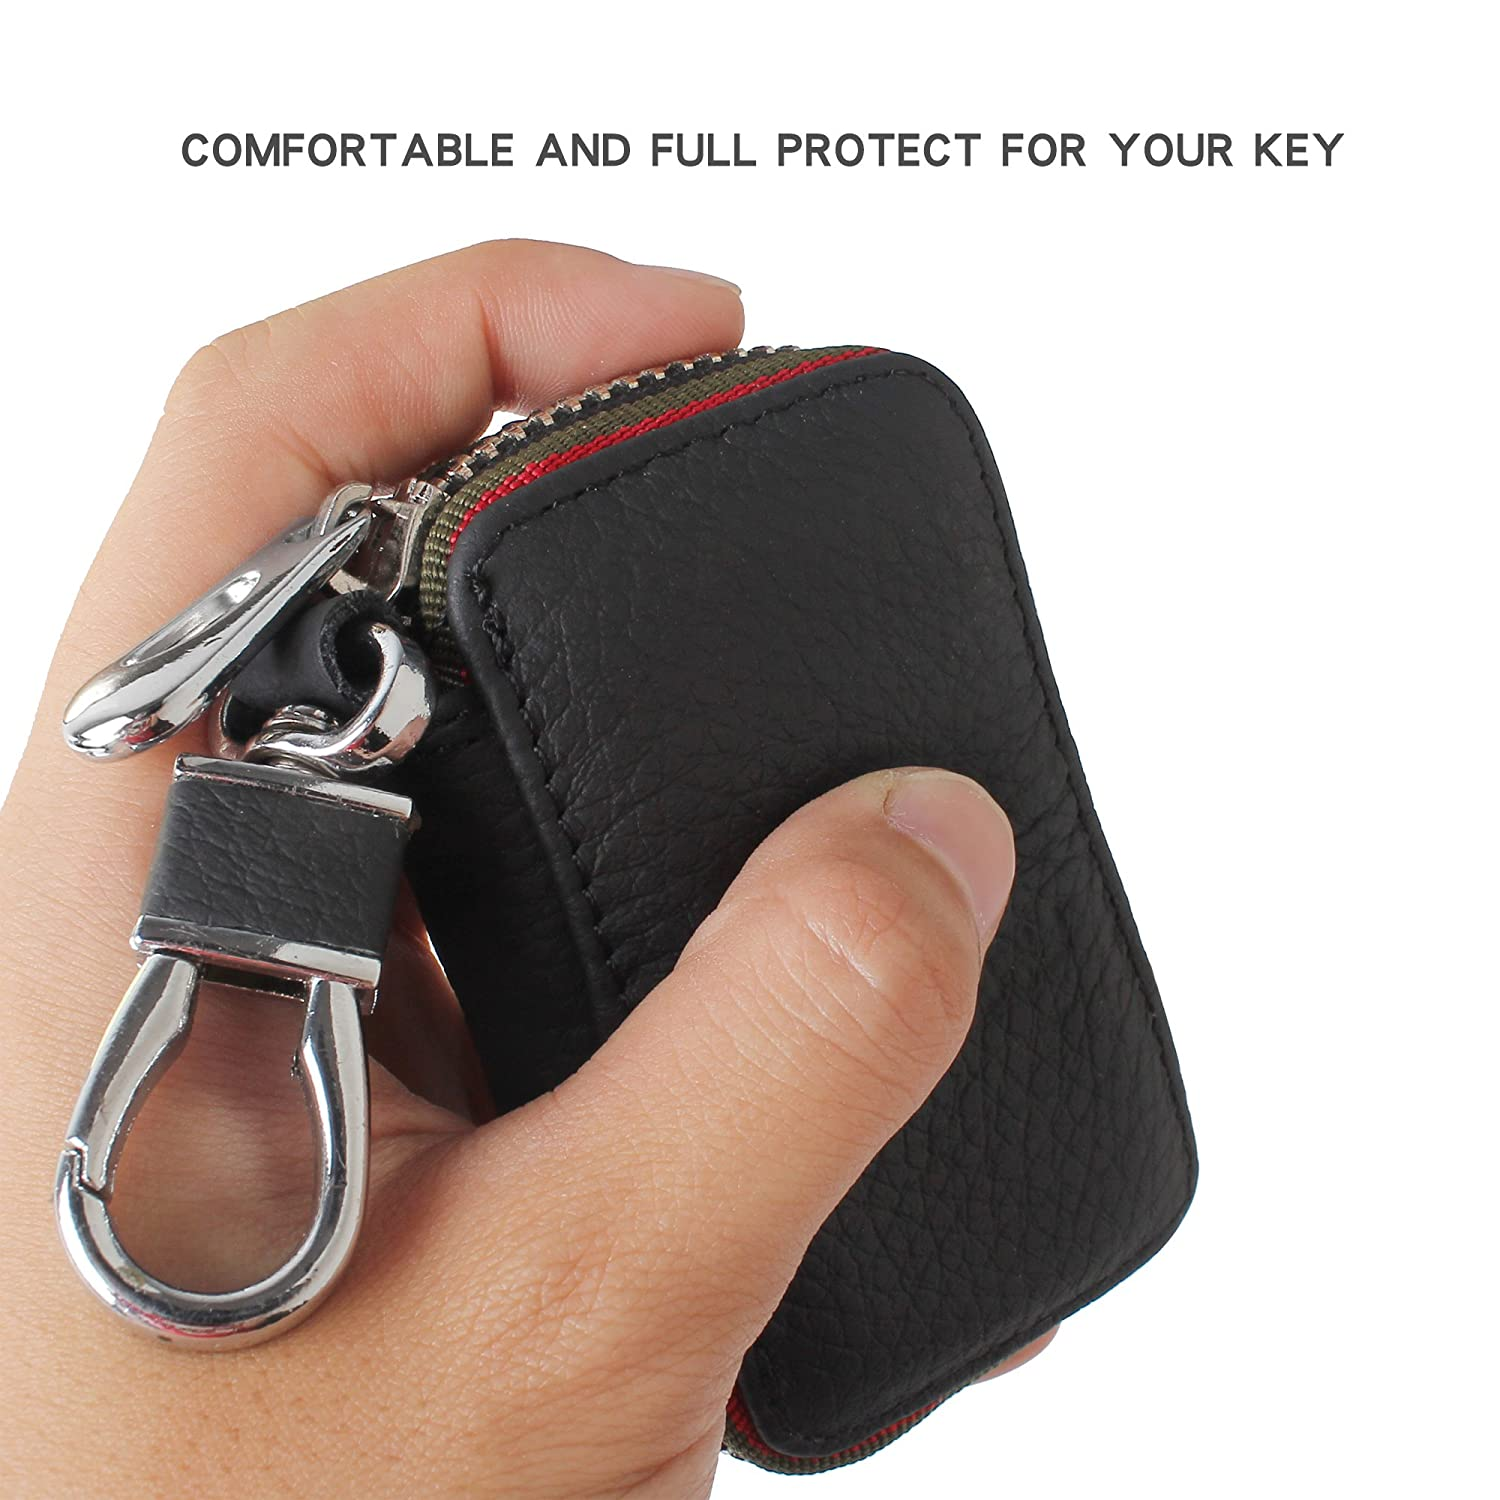 Amooca Black Audi Premium Leather Car Key Chain Coin Holder Zipper Case Remote Wallet Bag YSB001